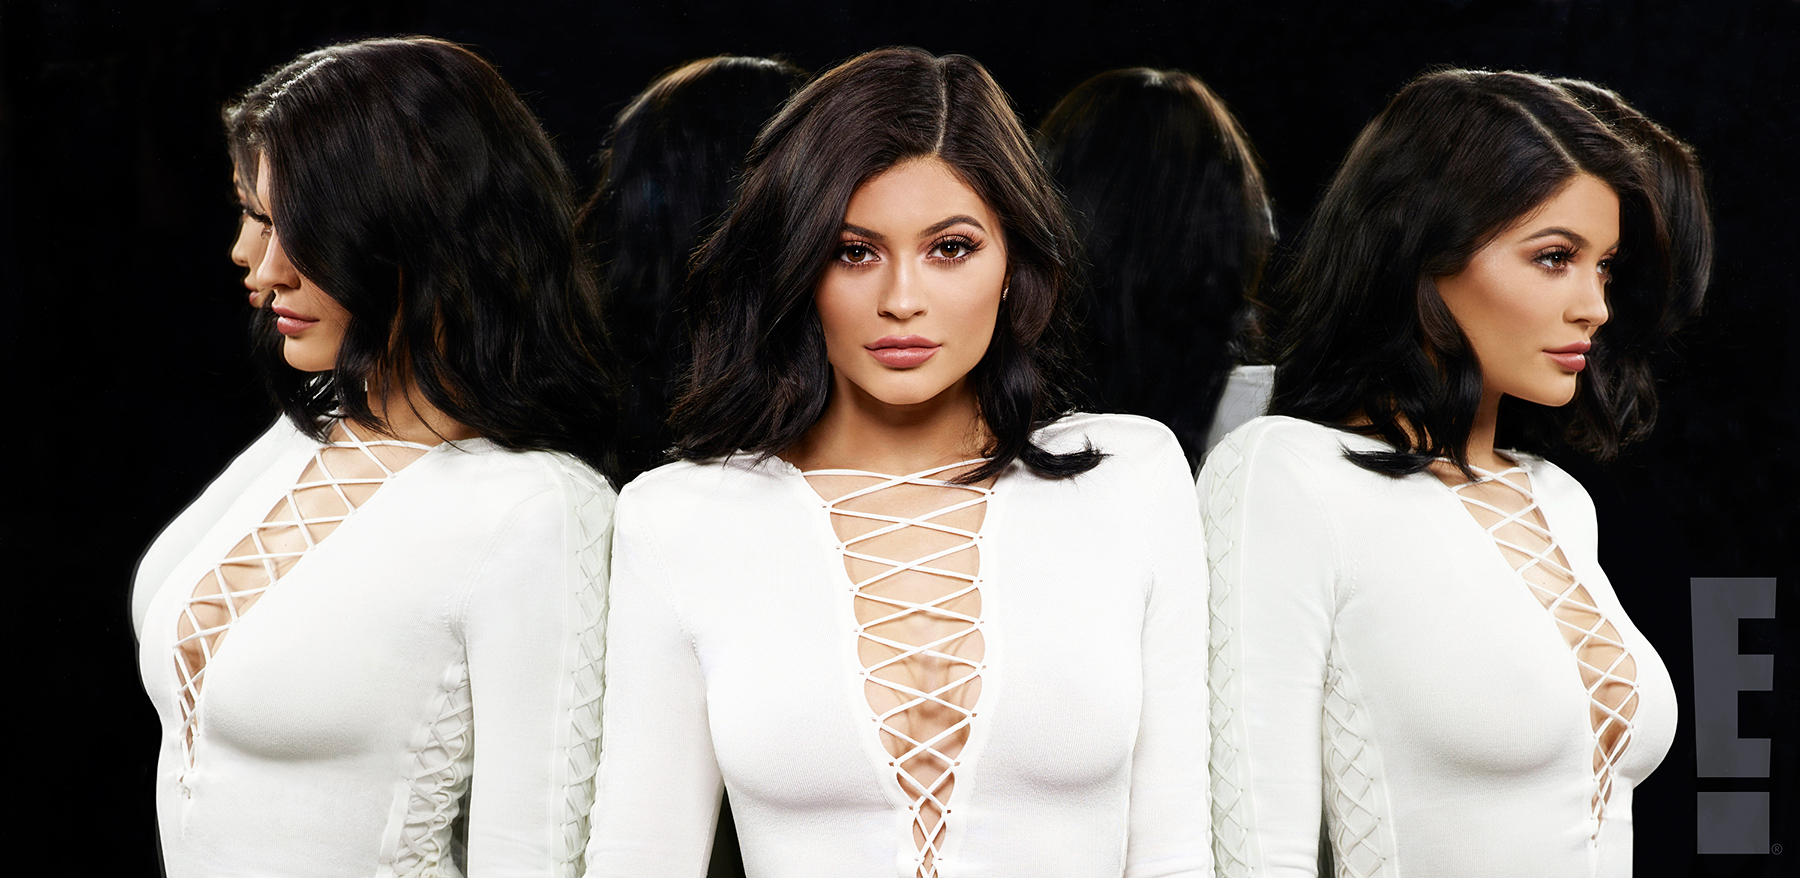 Kylie Jenner Life of Kylie